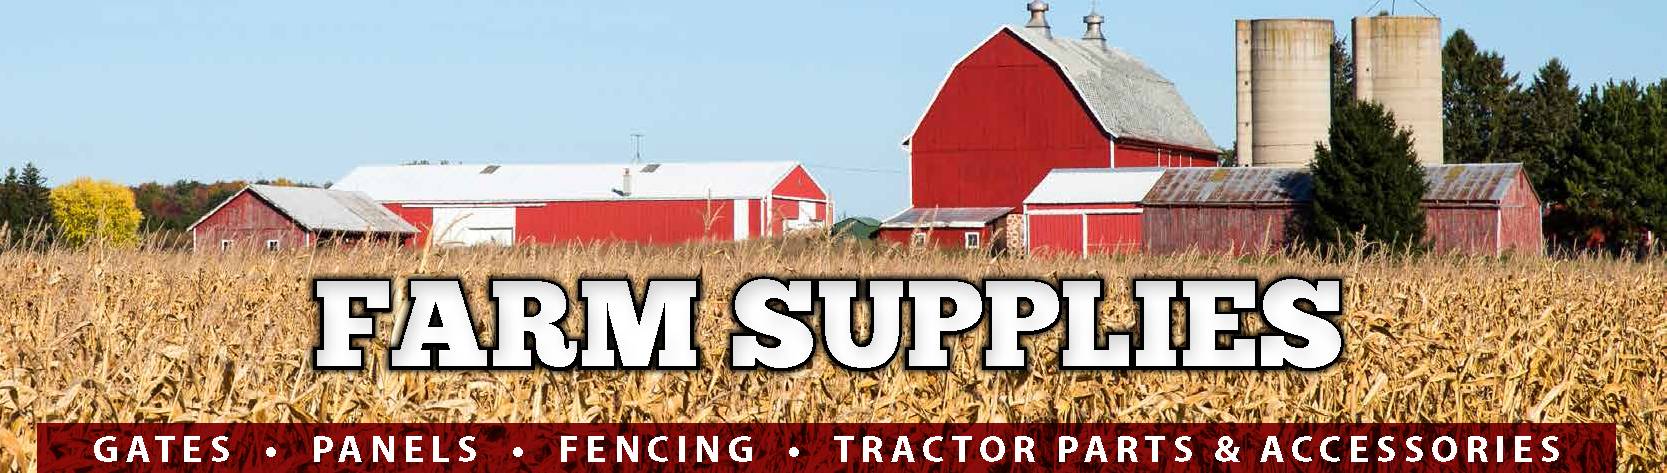 Farm Supplies